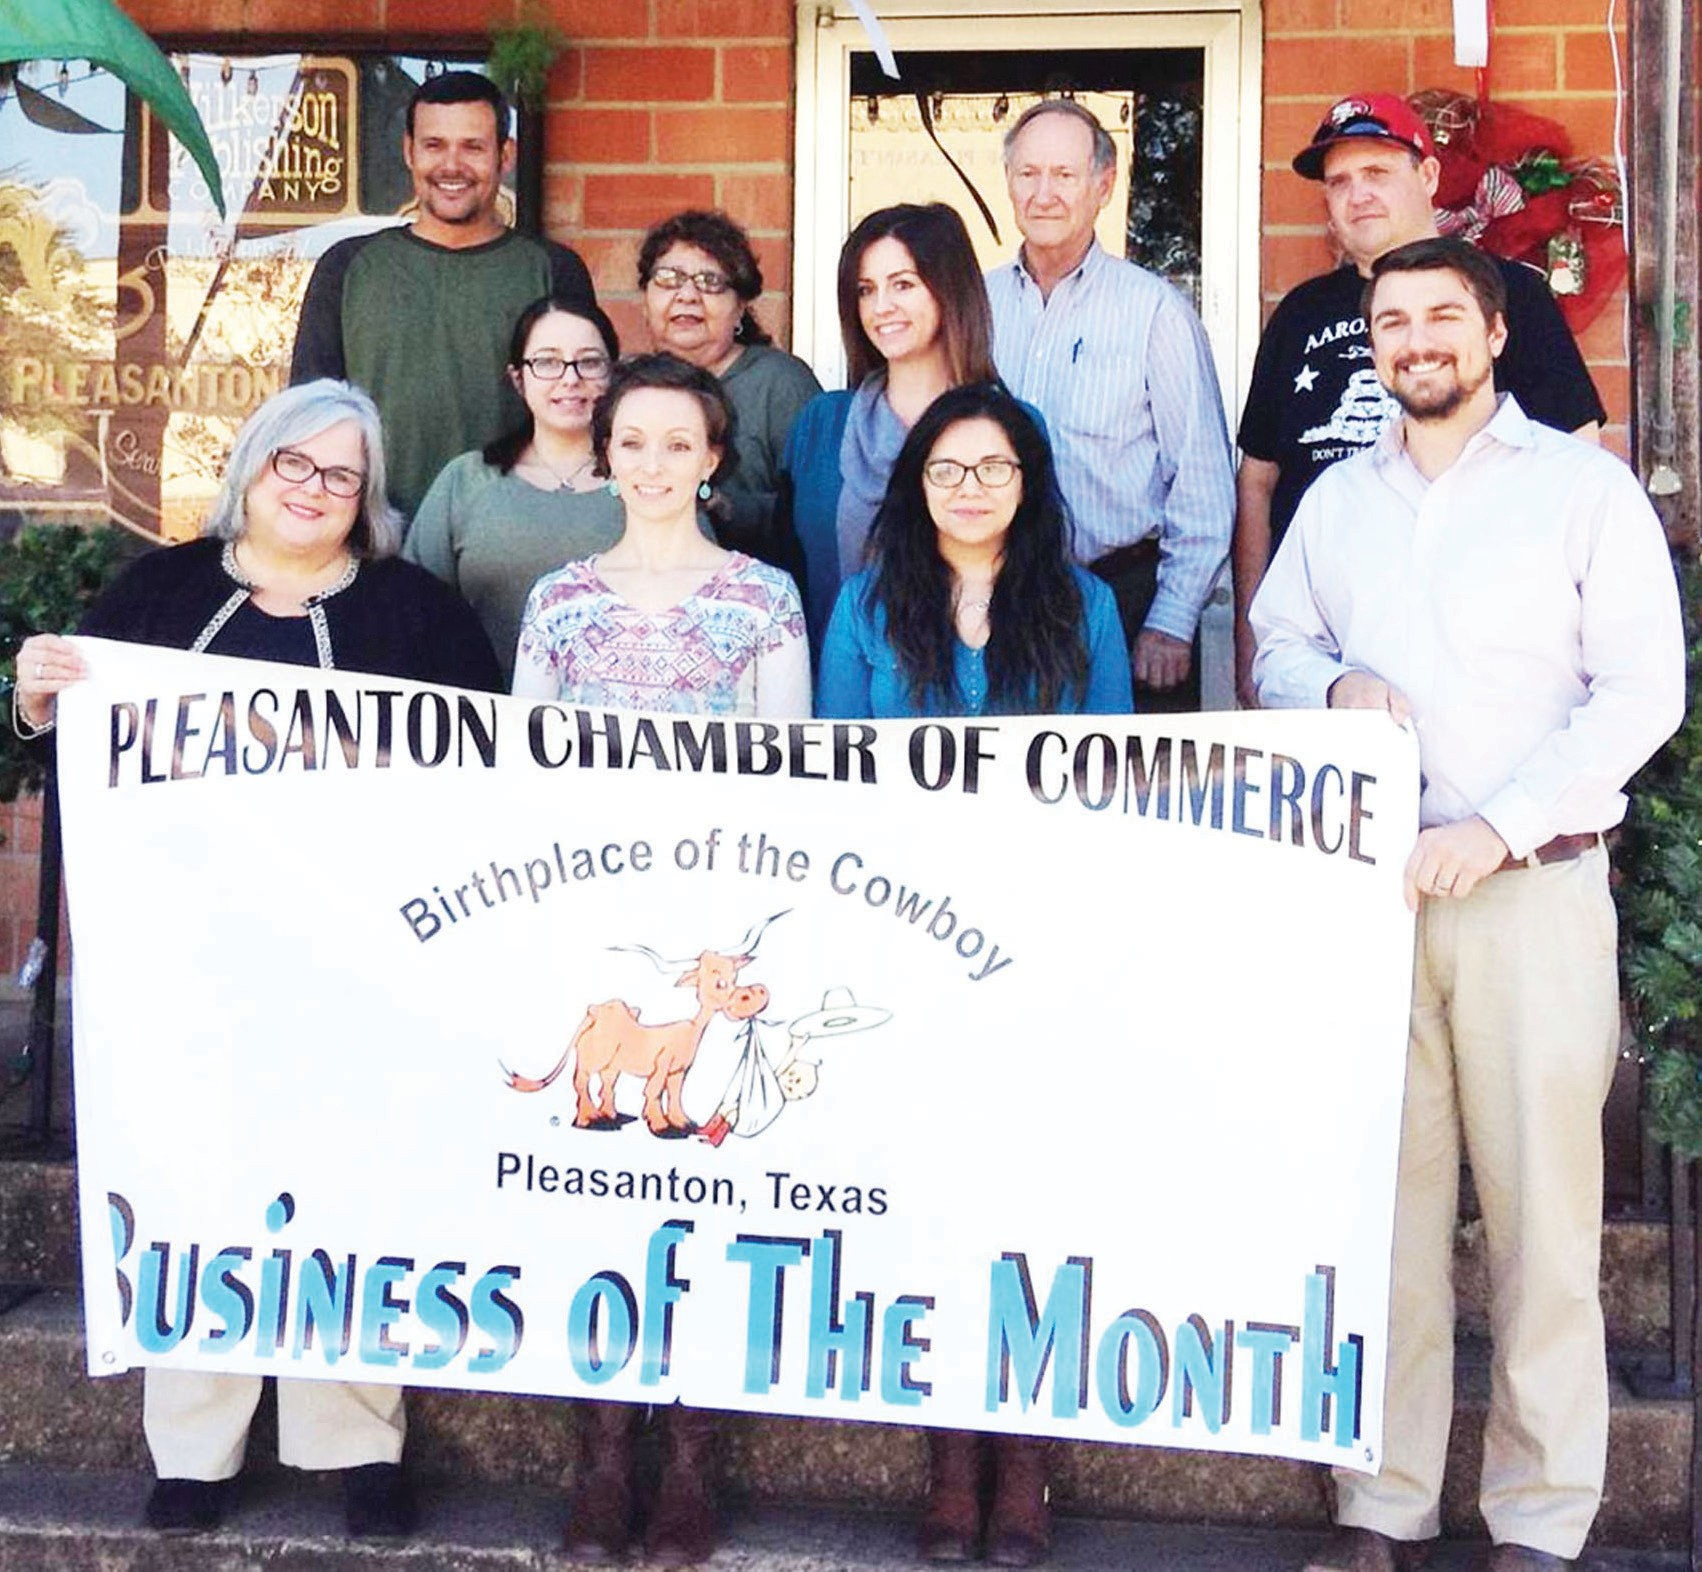 Cindy Mumm | Pleasanton Chamber of Comm erce The Pleasanton Chamber of Commerce named the Pleasanton Express as Business of the Month for January. Gathering for the presentation of the banner that will be displayed all month are some of the Express staff. Left to right, top row are Chris Filoteo, Hope Garza, Leon Zabava and Aaron Davidson. Middle row are Erika Vela and Robbie Hamby. Front row are Sue Brown, Sarah Pace, Amanda Velasquez and Pleasanton Chamber president Kevin Aniol.